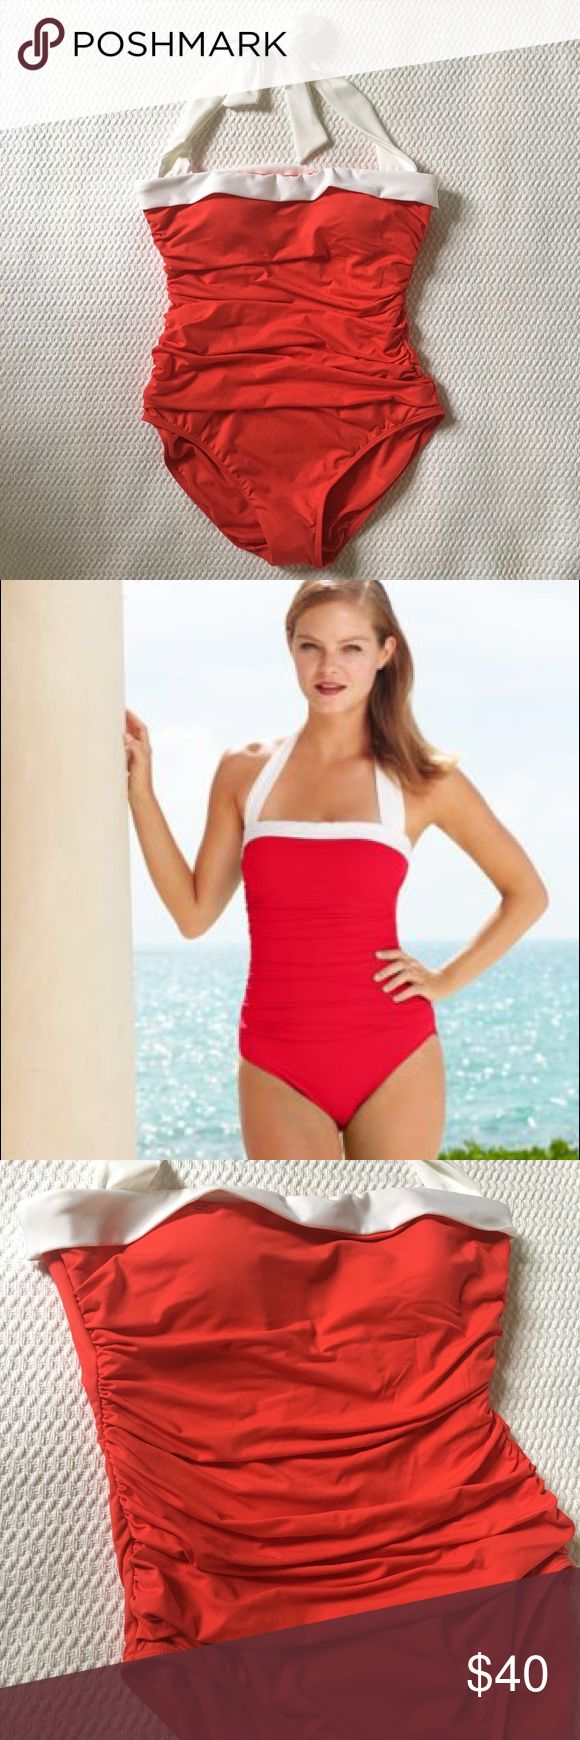 NEW Ralph Lauren Coral/Red Halter 1 Piece Swimsuit Never worn and flattering Bel Aire Bandeau Mio One-Piece in Coral/Red with white contrast trim at neckline and straps. Bandeau neckline with halter ties at back neck. Shirred side seams and a tummy-control design create a slimming silhouette. Supportive shelf bra with lightly padded cups and flexible boning. Skirted detail at hip increases coverage. Medium rear coverage. Lined. Hygienic liner still intact.  Lining: nylon, Lycra®, polyester…